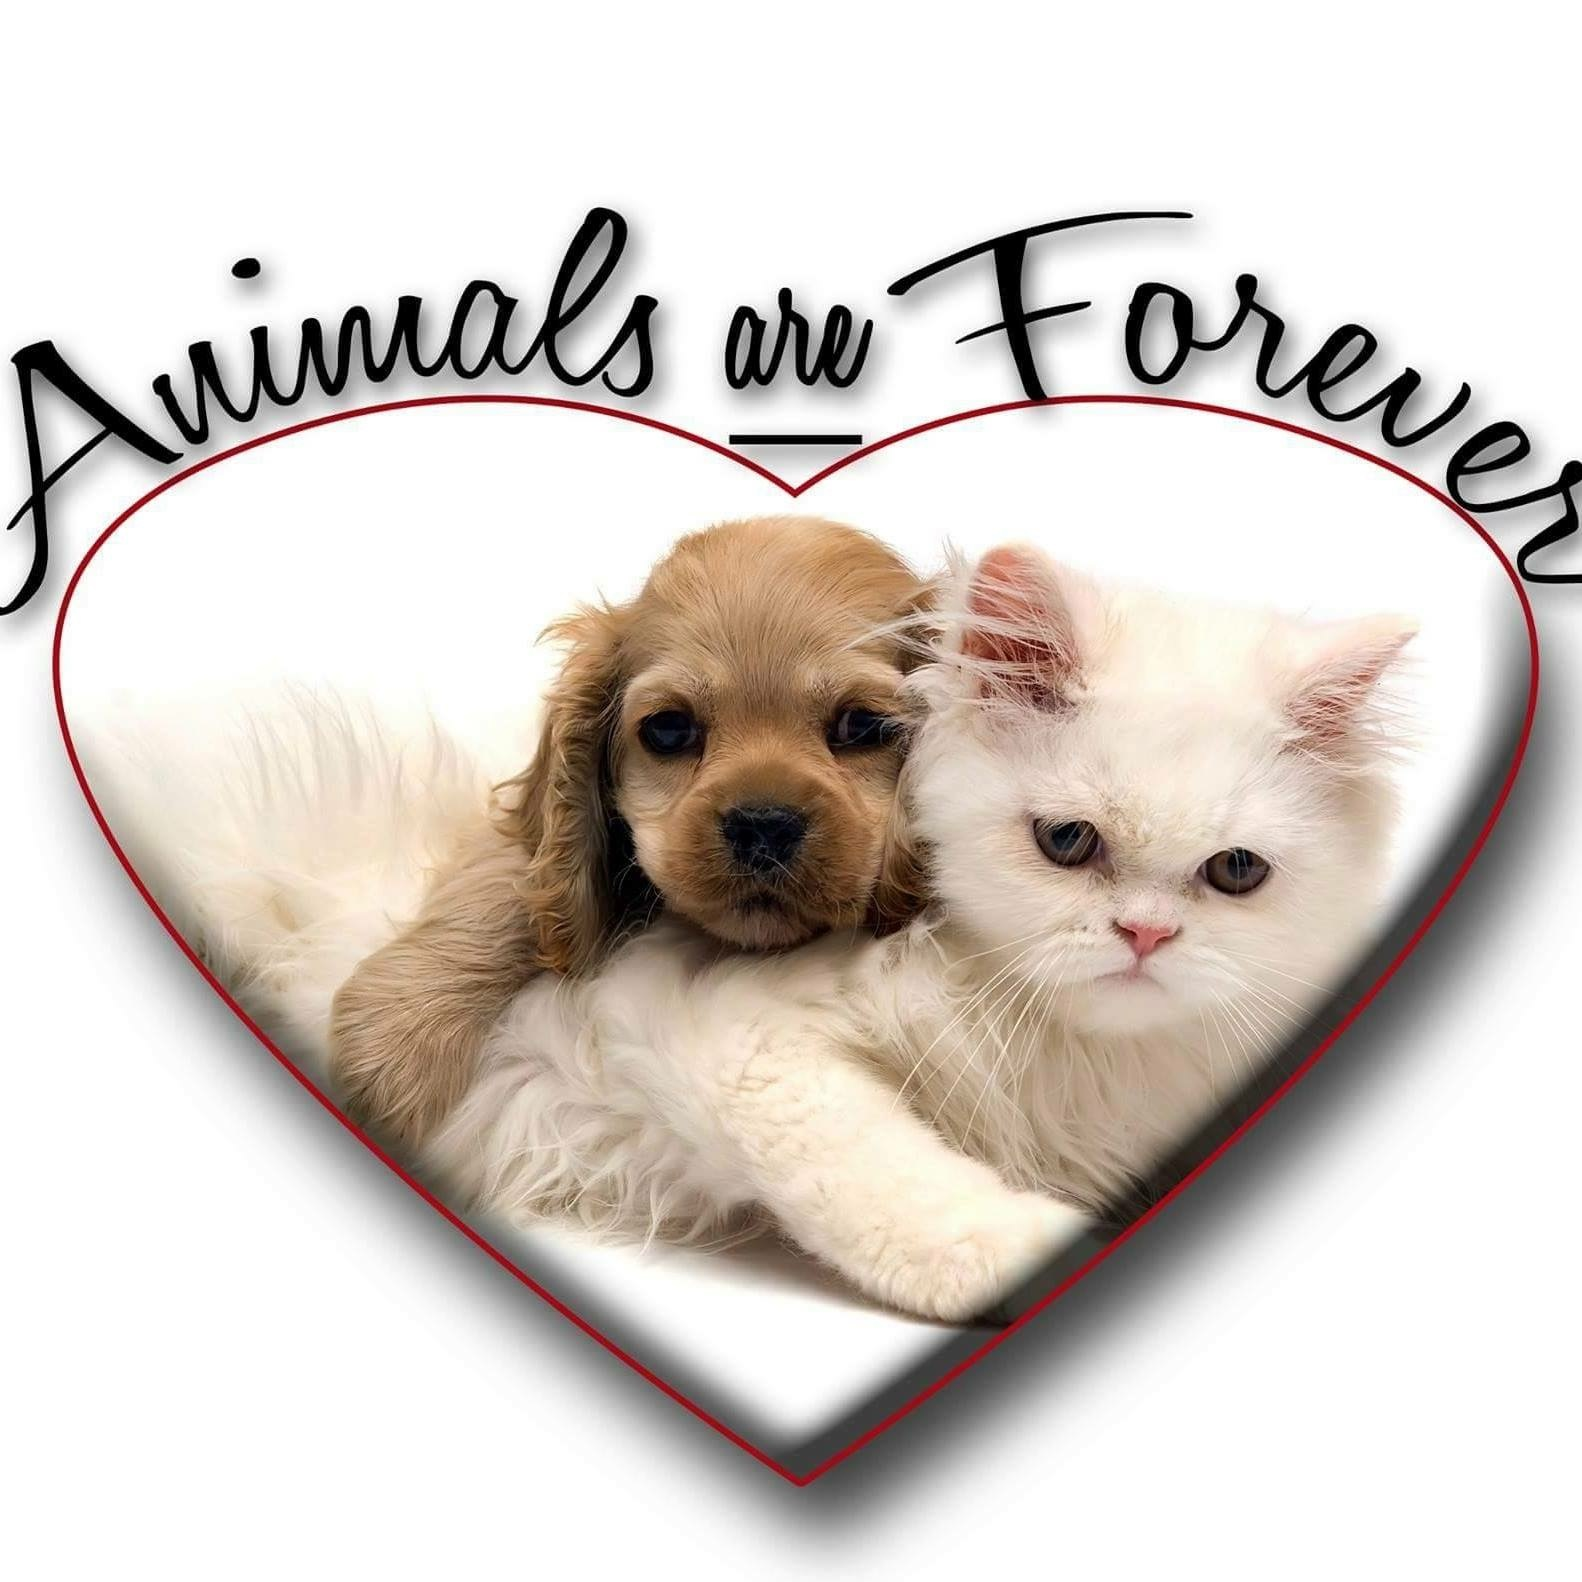 Animals Are Forever, Inc